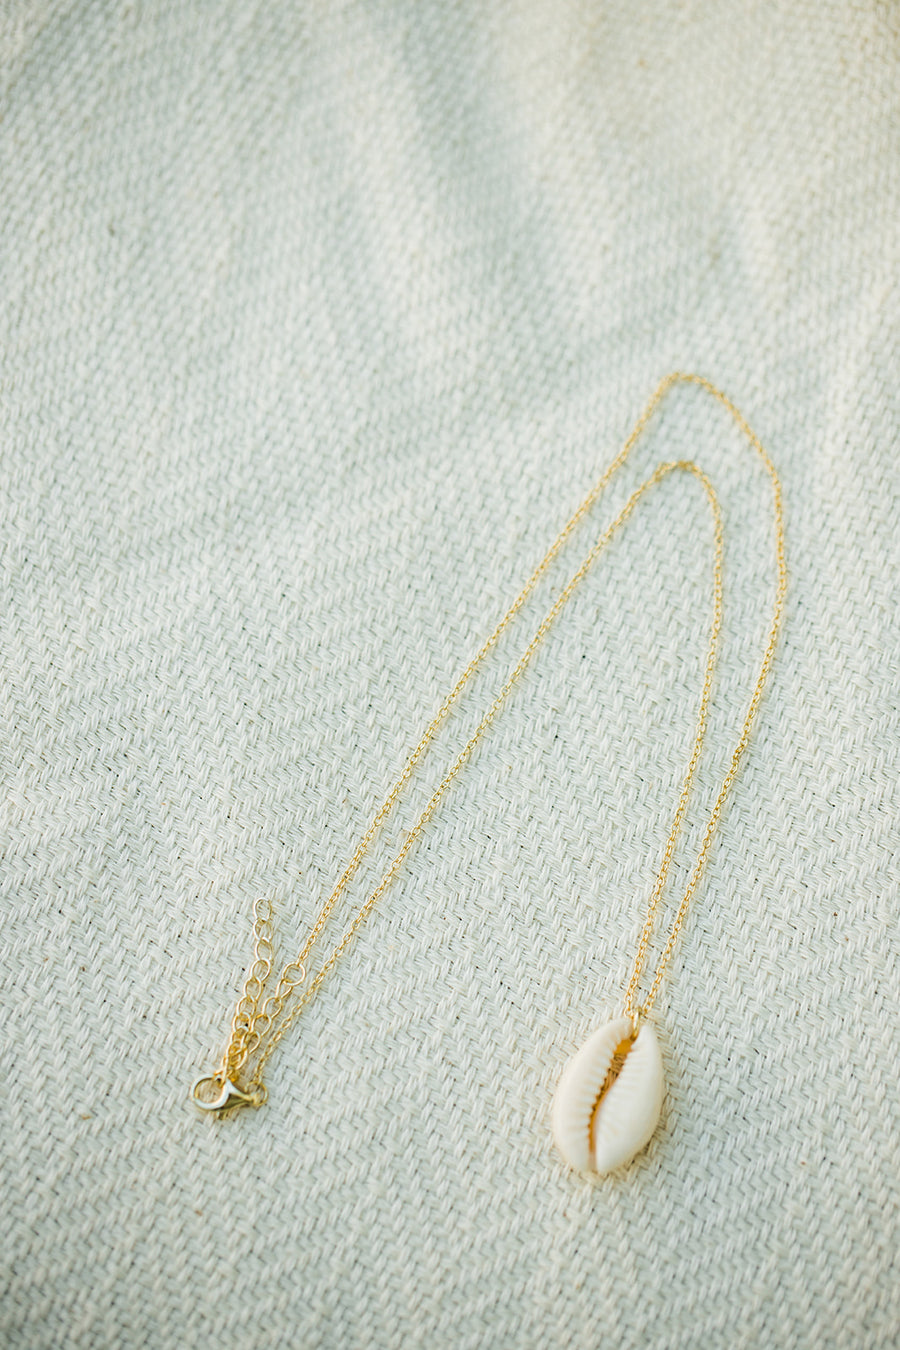 La Jolla Shell Necklace - The Beach Bride by Chic Parisien, a destination for beach weddings, bachelorettes and honeymoons